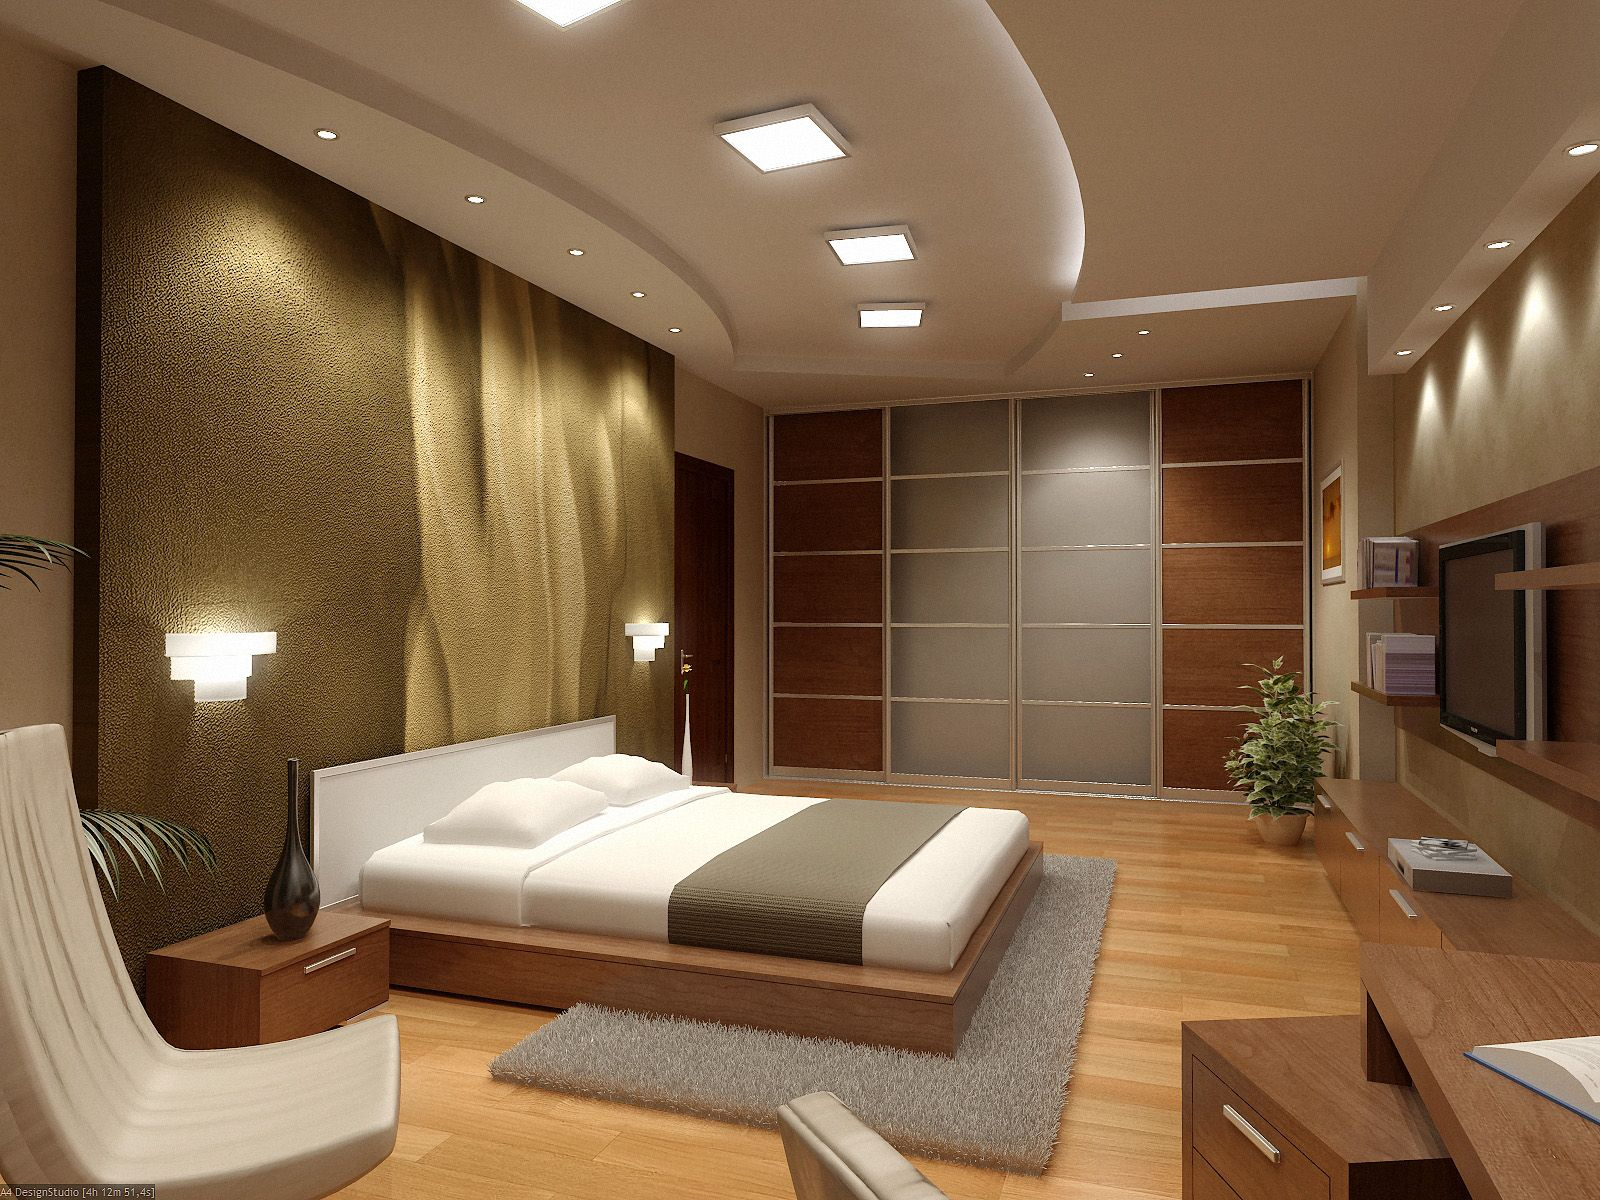 New home designs latest modern homes luxury interior for Interior designs for bedrooms ideas